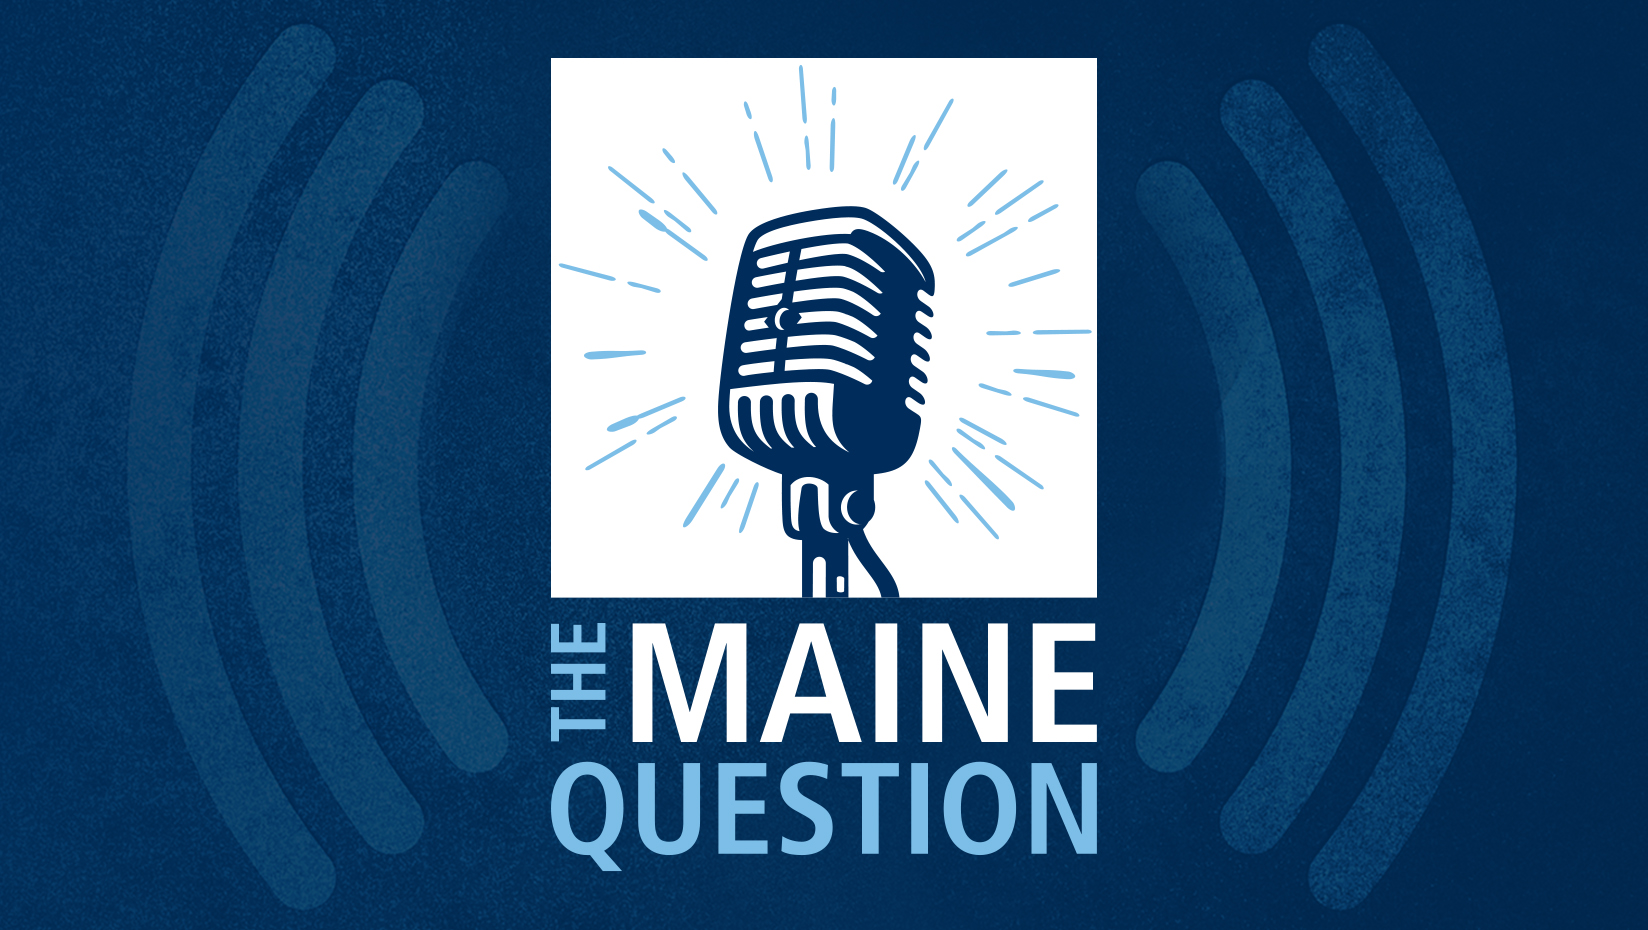 featured image for 'The Maine Question' asks what the future holds for Maine manufacturing